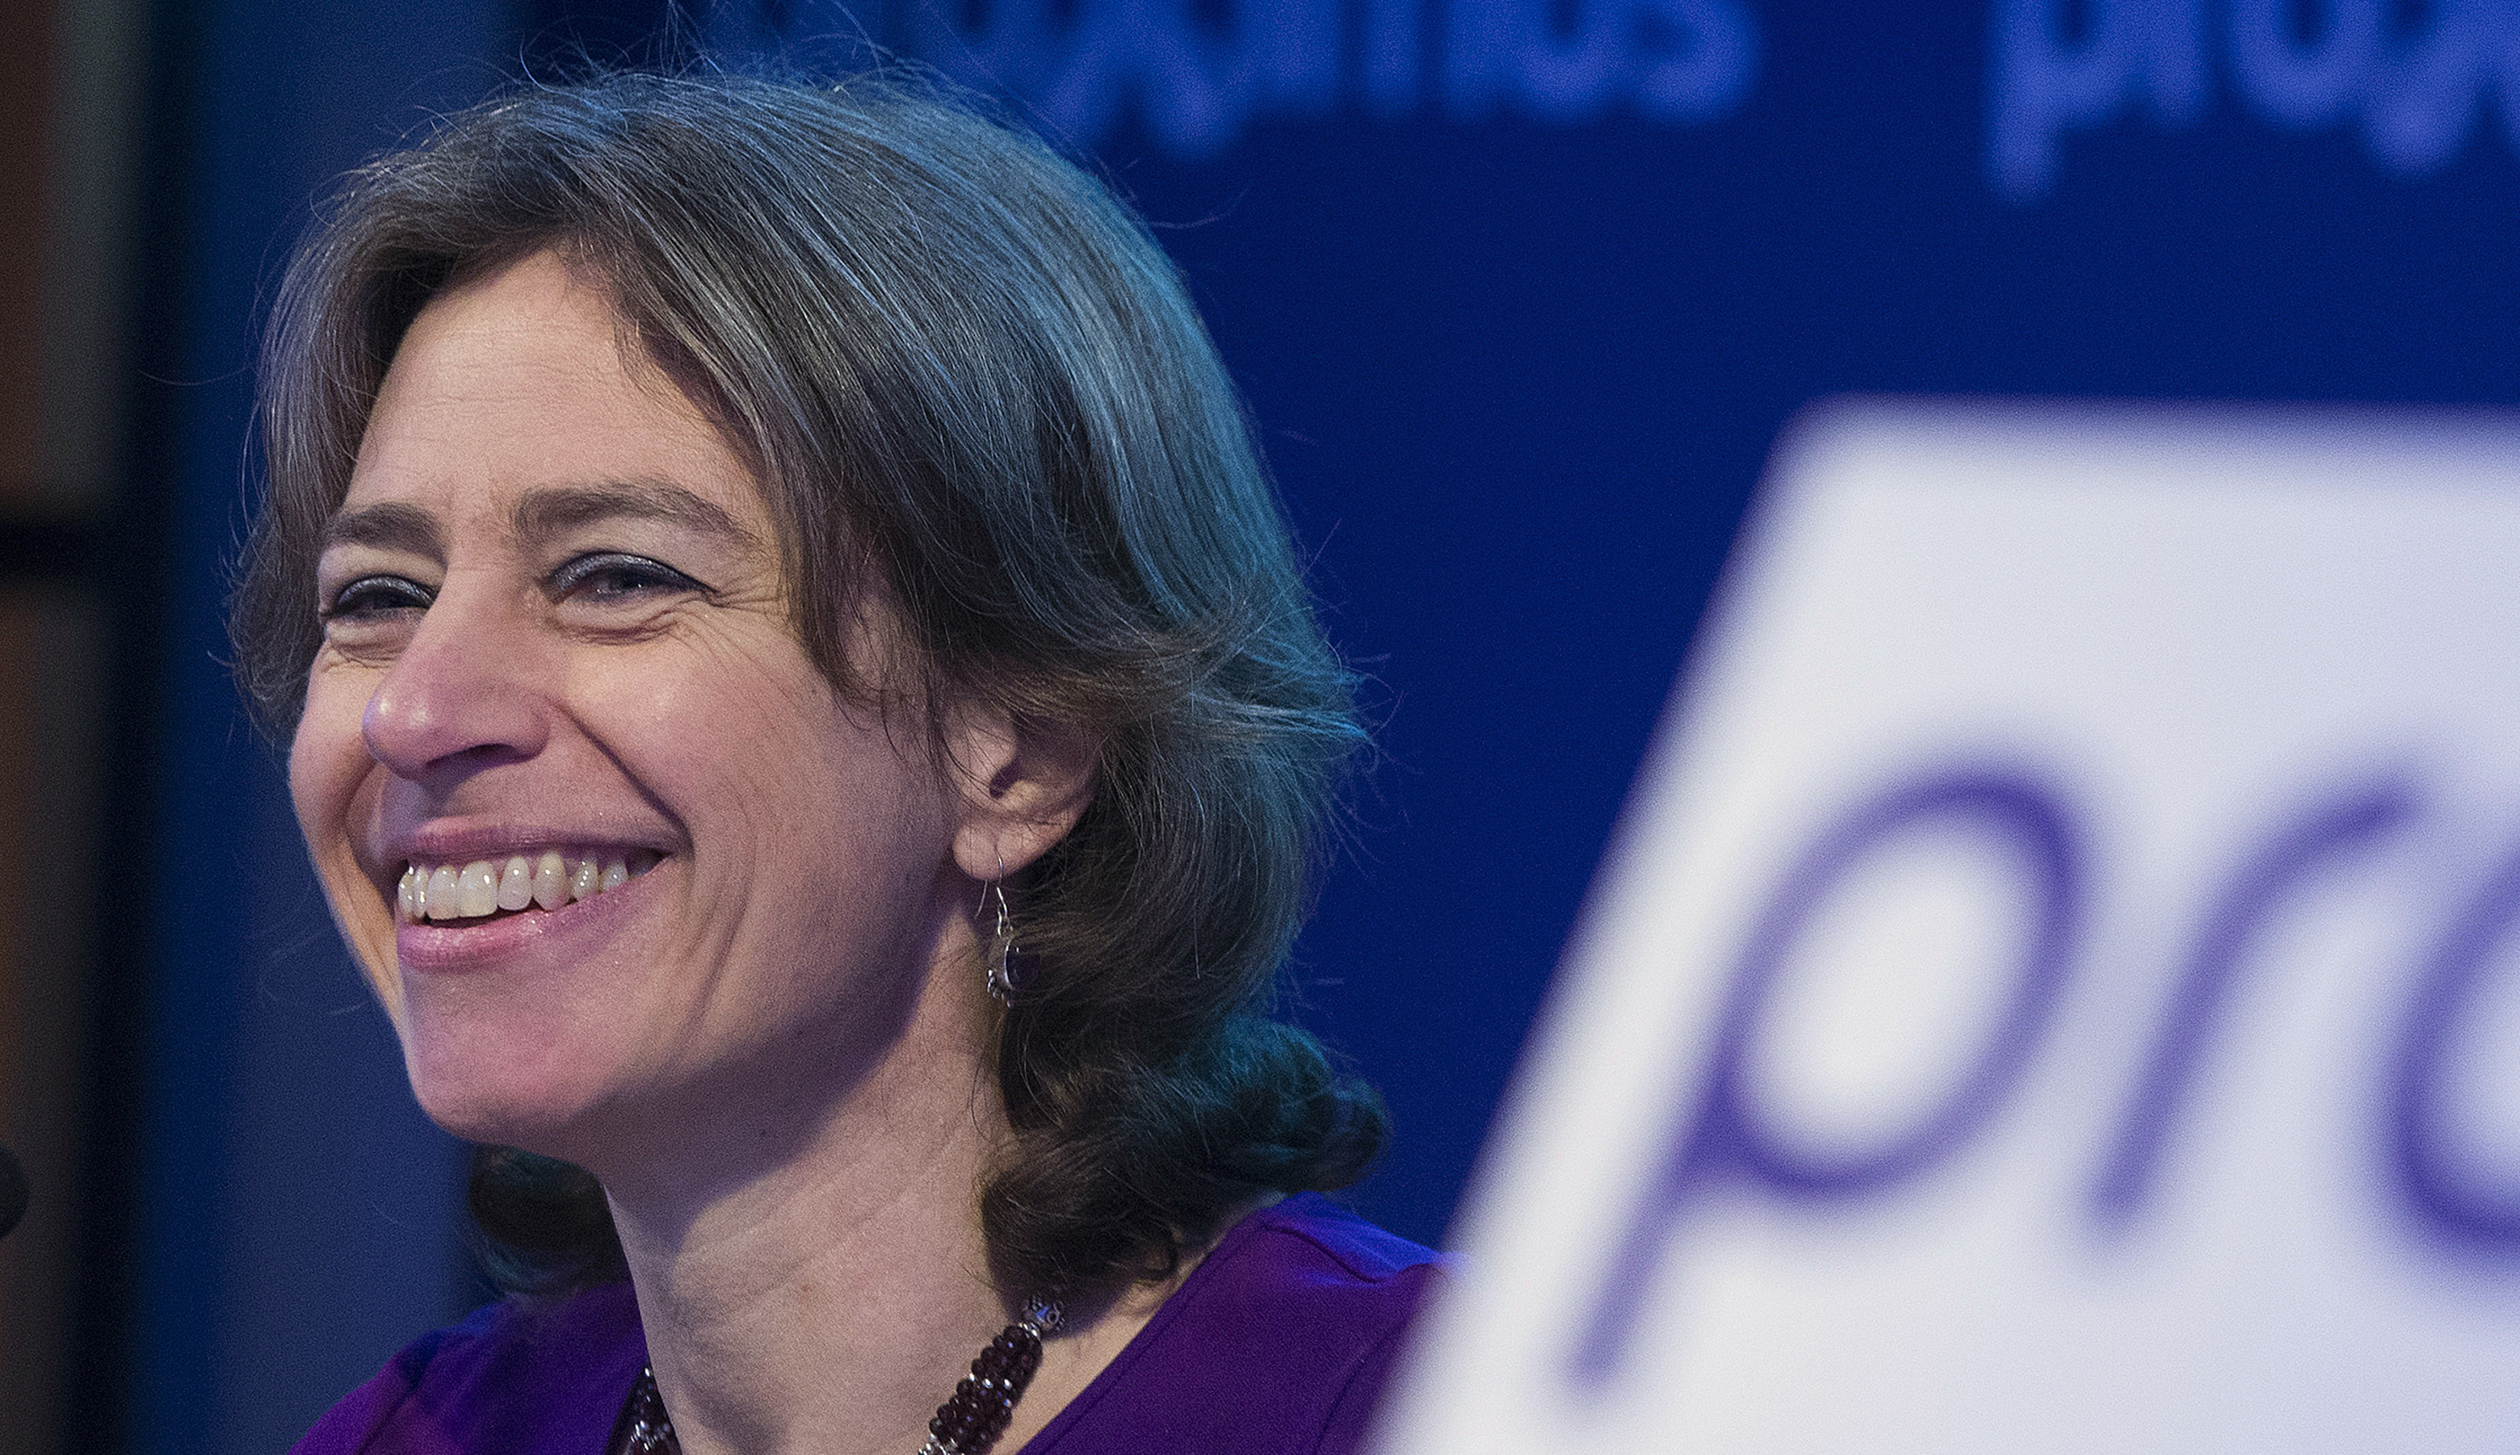 Proximus CEO Dominique Leroy presents the company's 2015 results during a news conference in Brussels